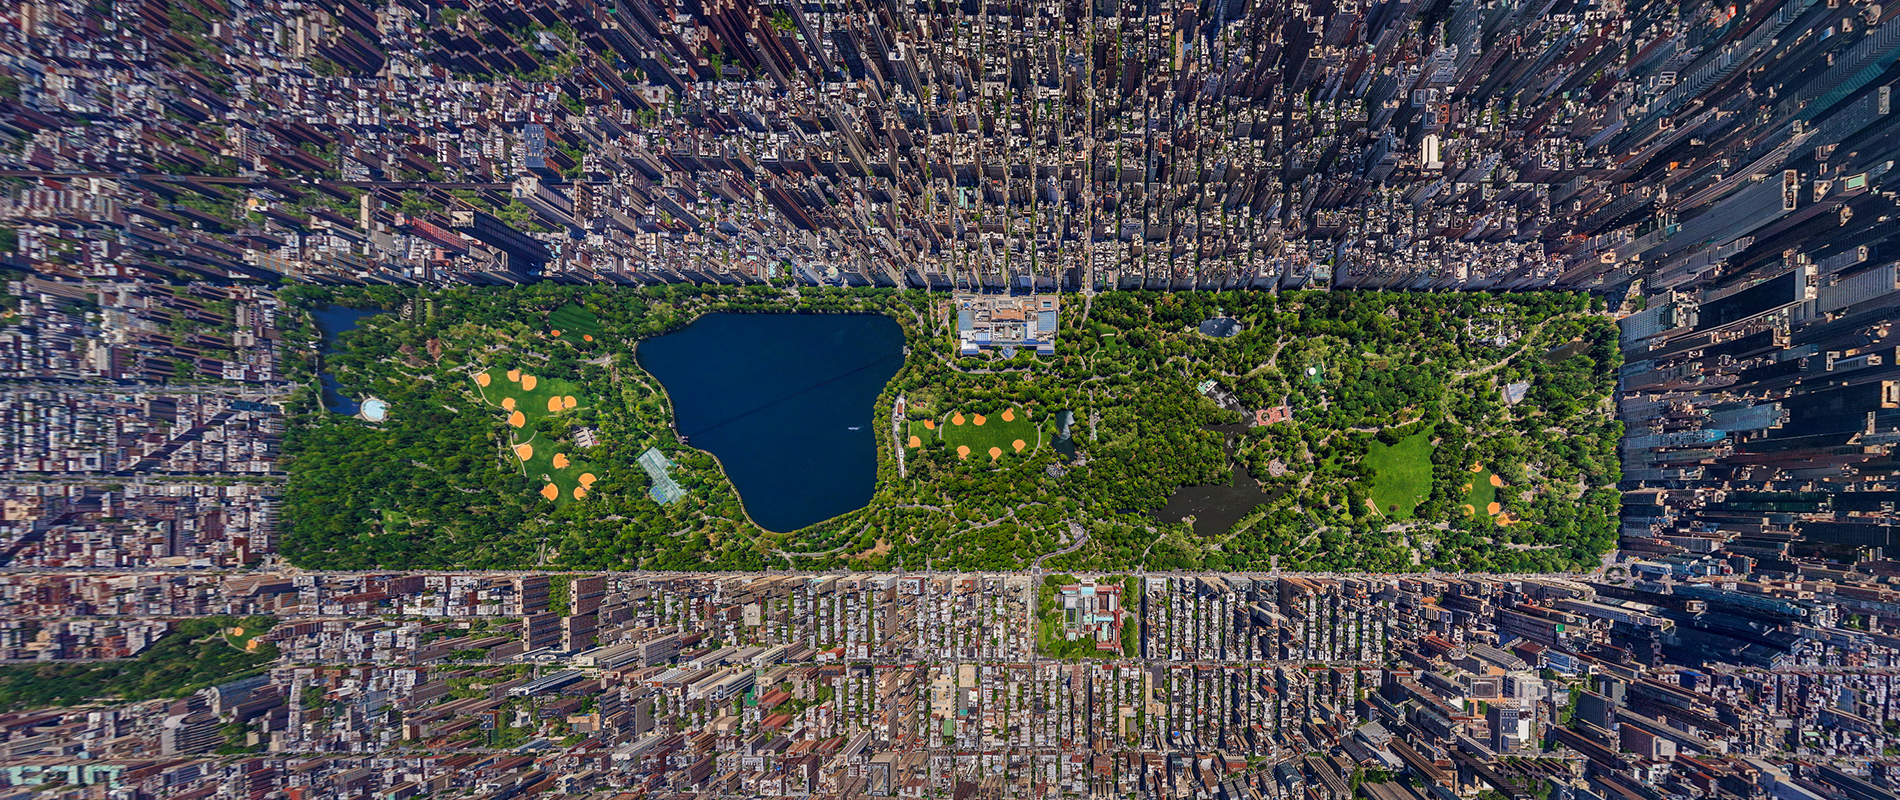 Central Park, The Green Lung of NYC